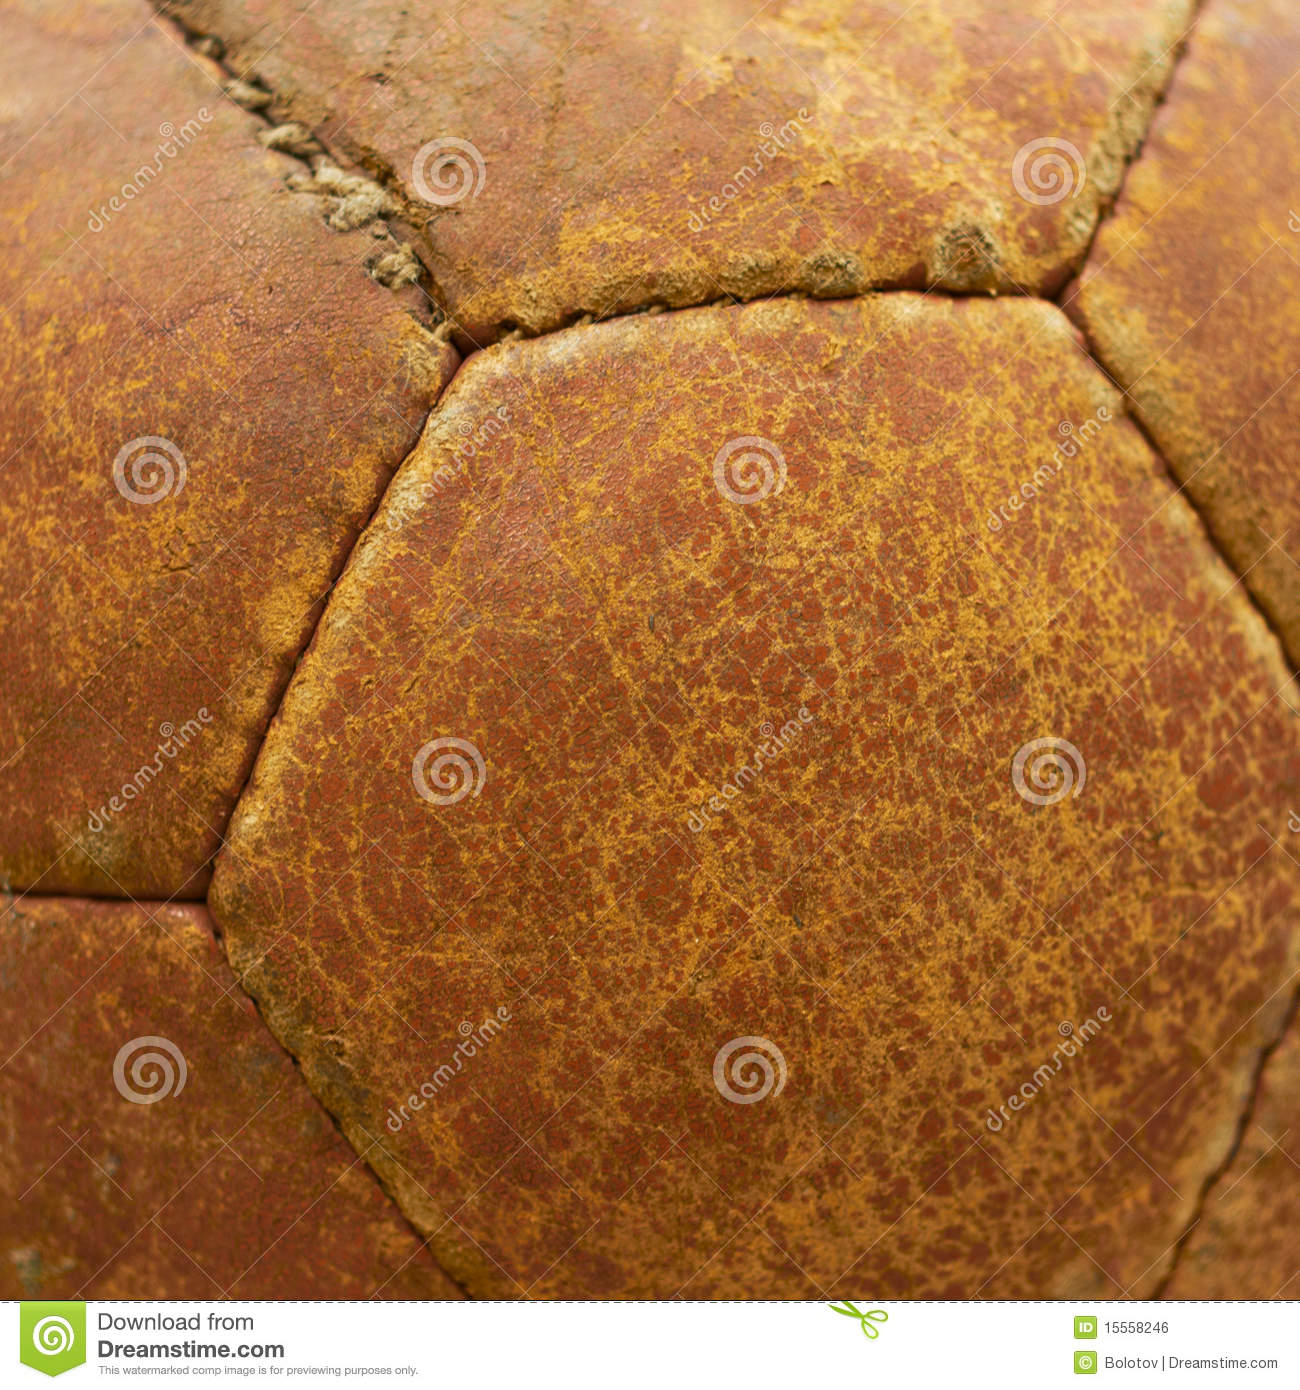 Leather texture of an old football ball.